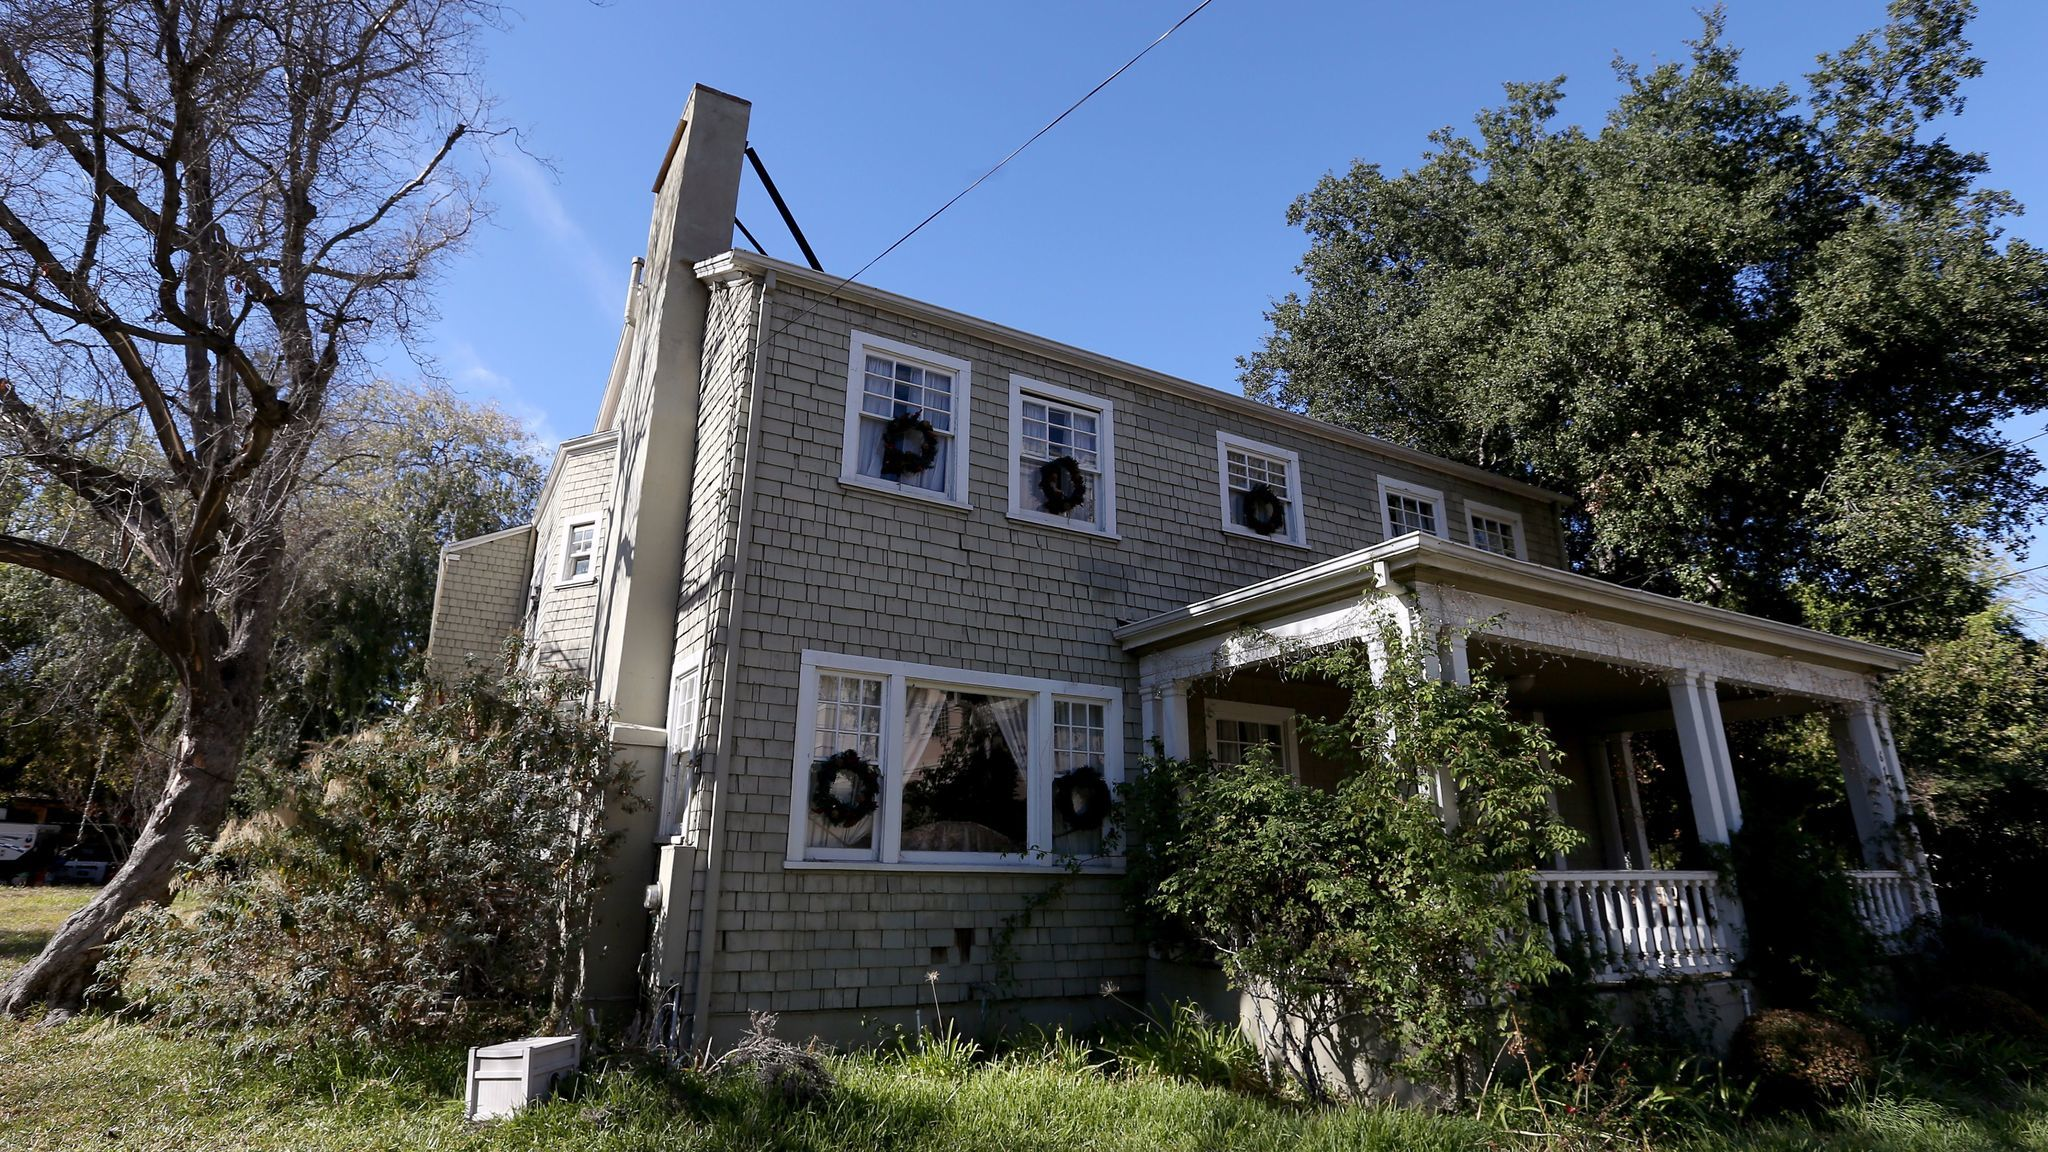 One of the old homes along a stretch of Pasadena Avenue once designated for an above-ground segment of the 710 Freeway.